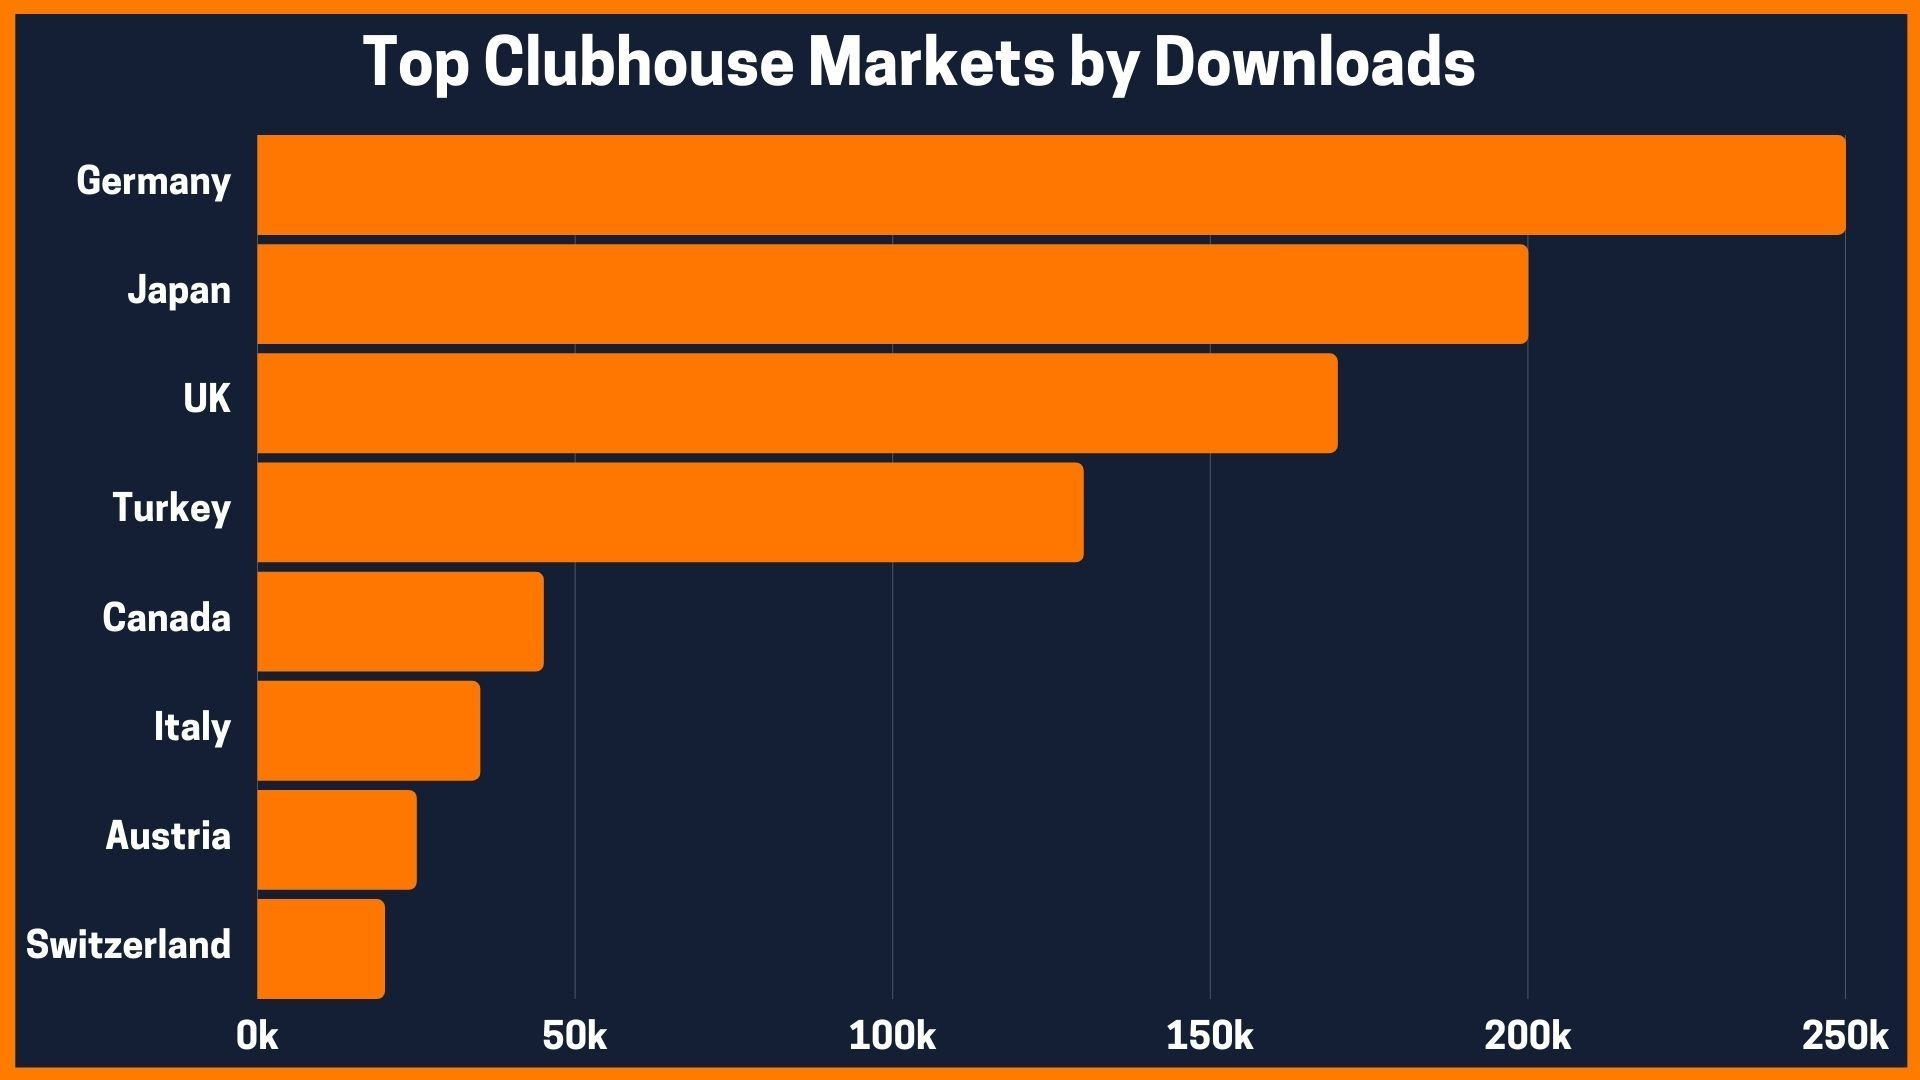 Top Clubhouse Markets by Downloads